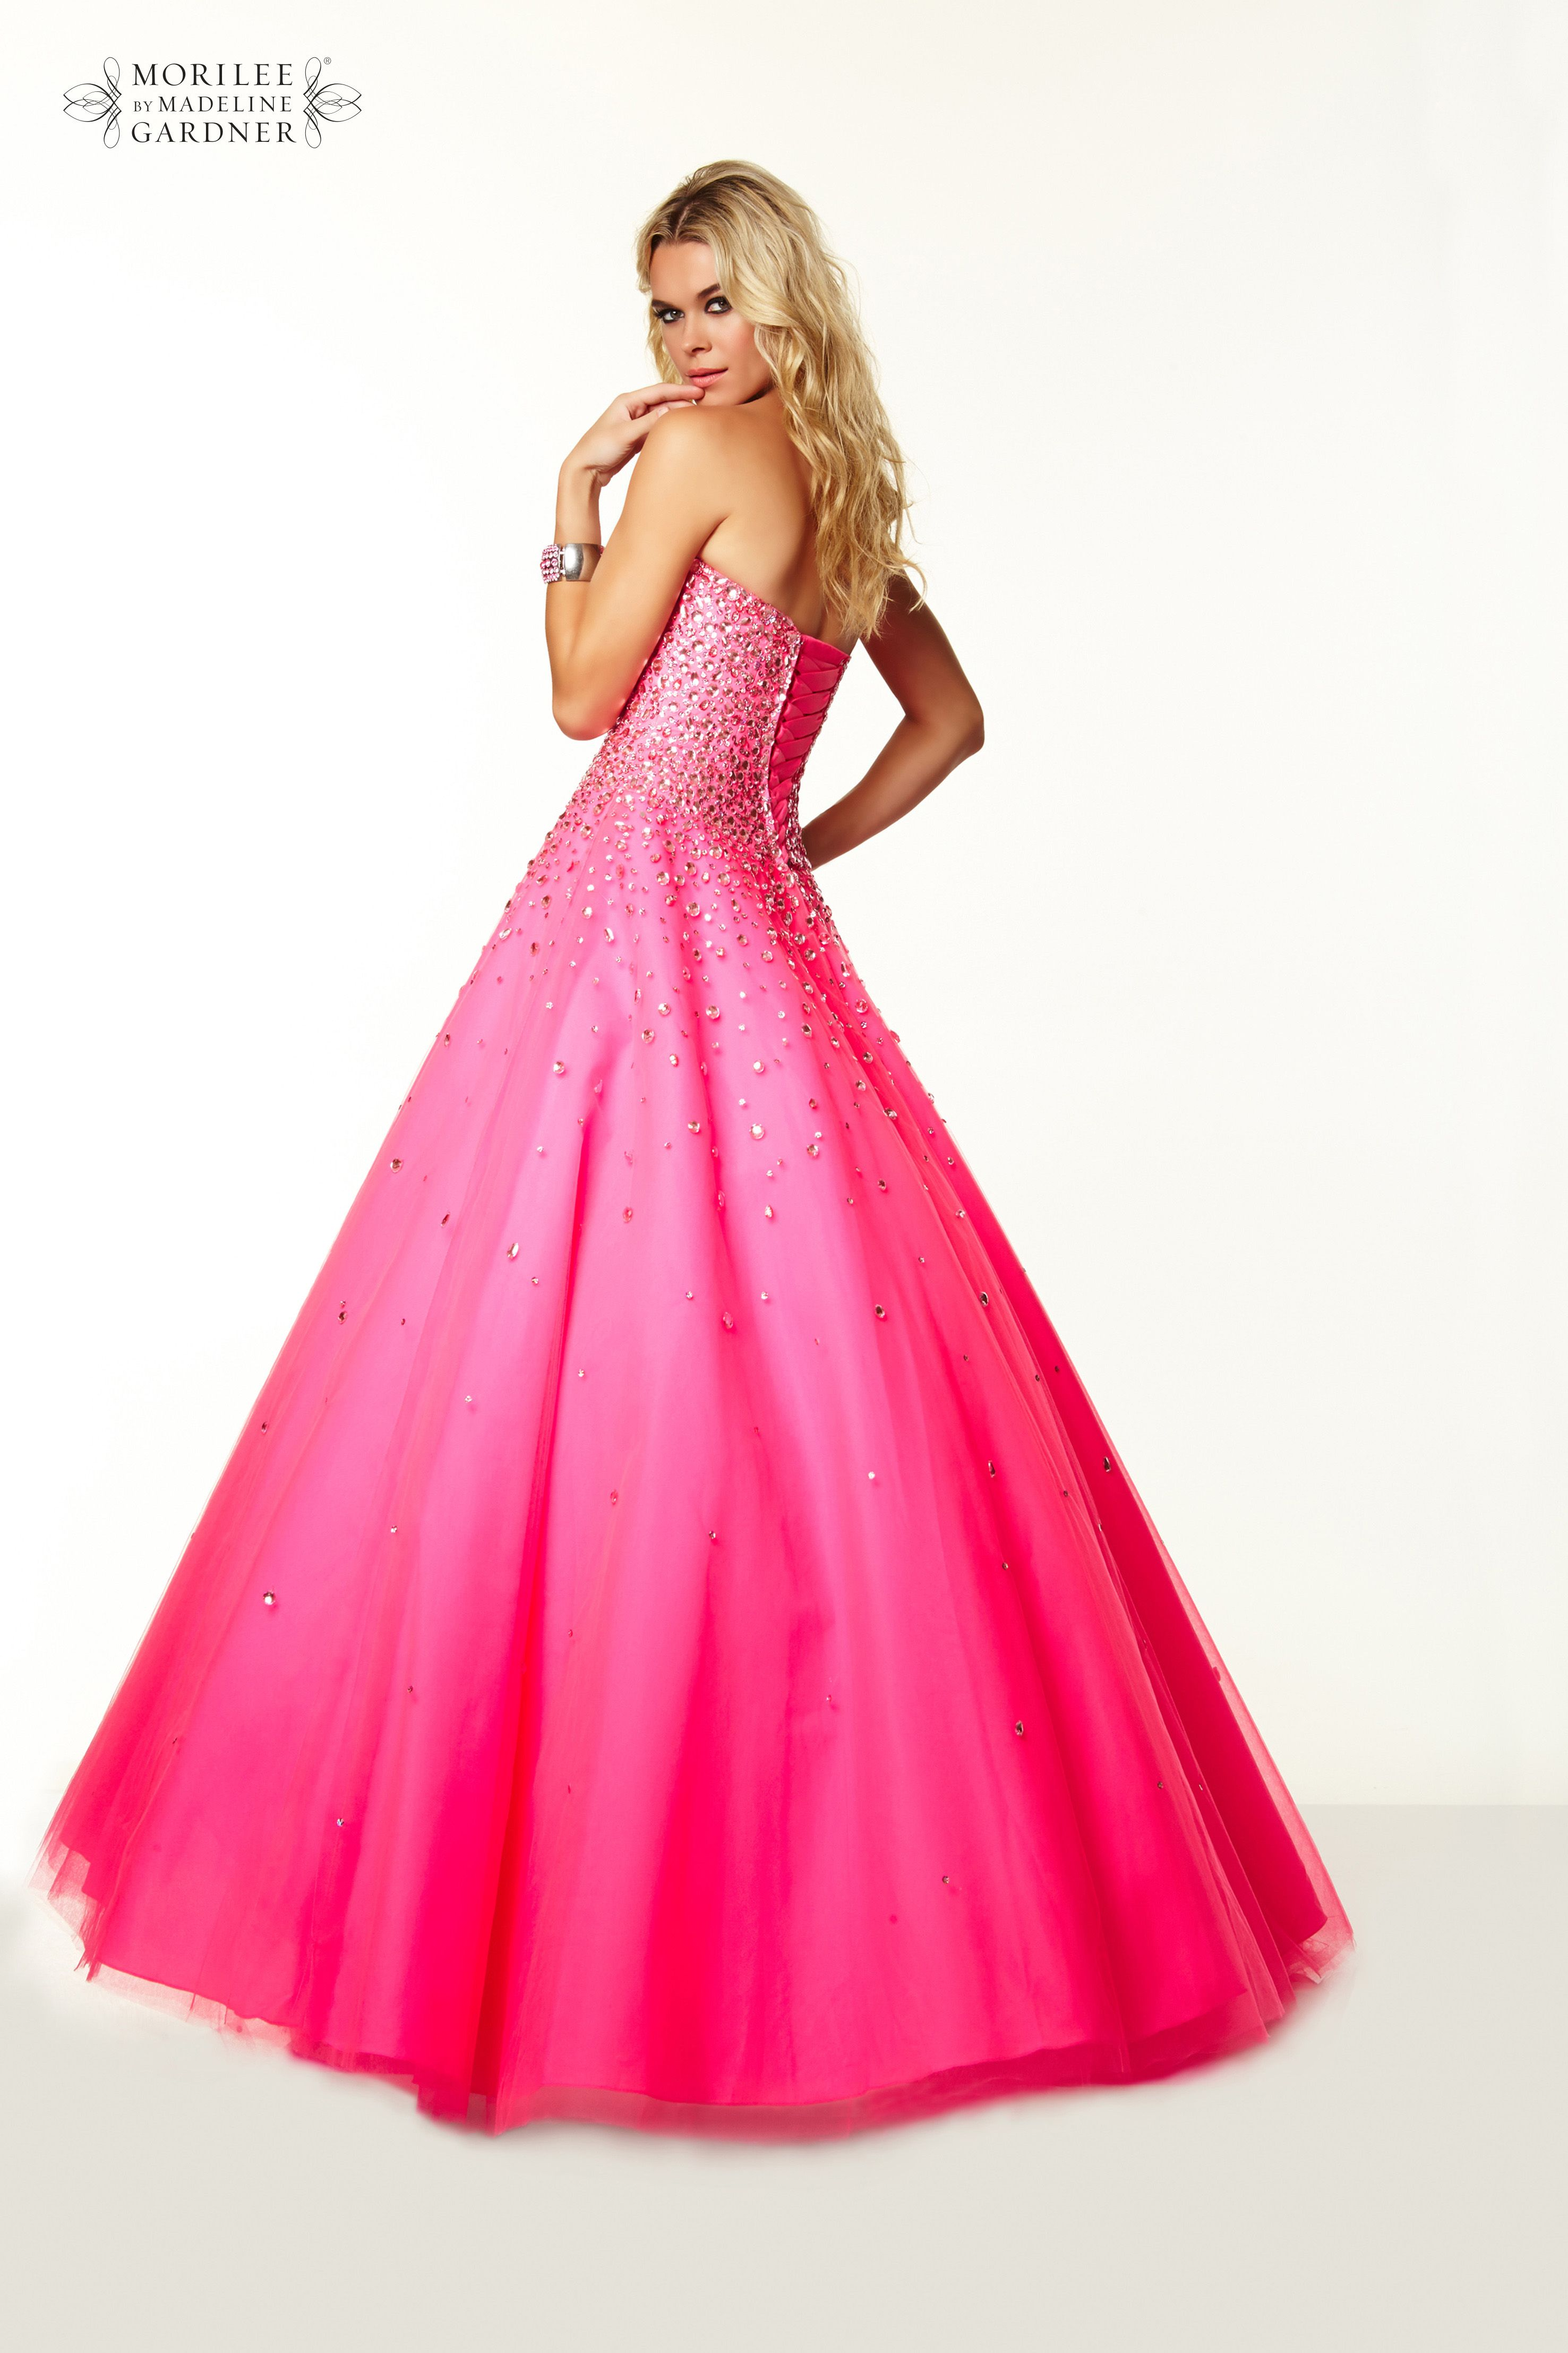 Mori Lee Paparazzi Prom Dress - Style 97034 - Available in Pink ...